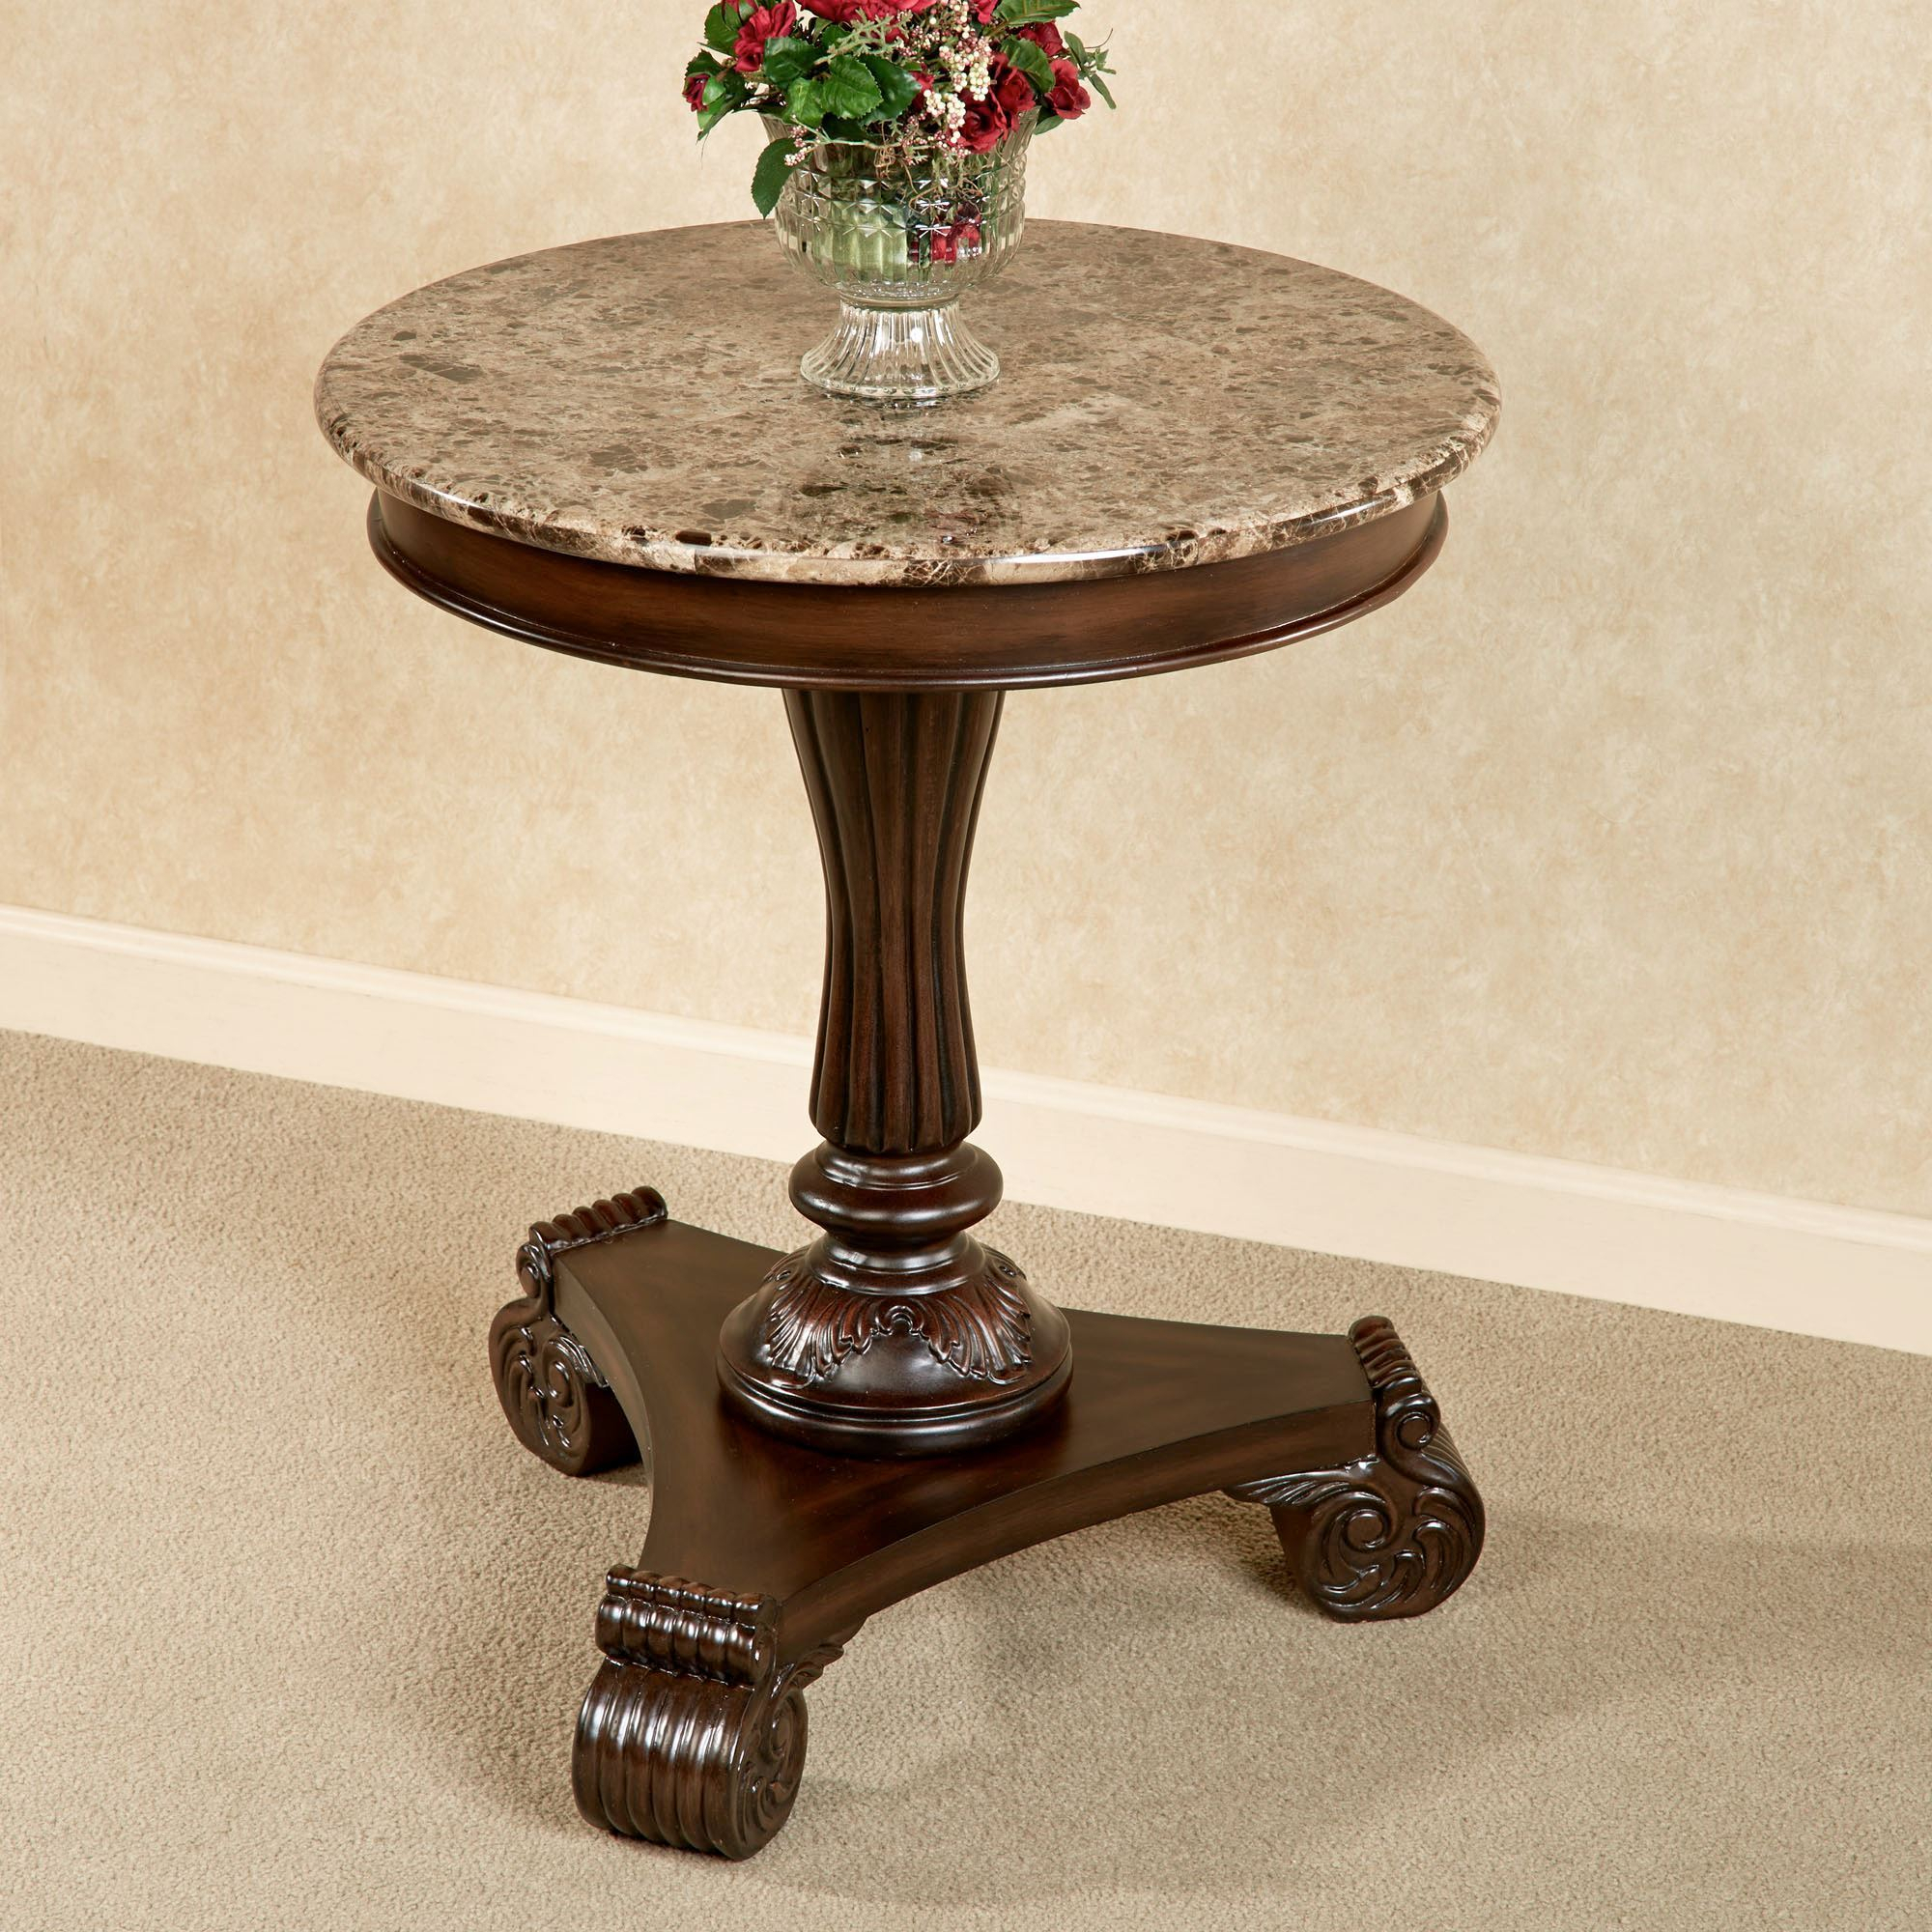 standing laptop stand the terrific great round cherry wood end accent tables furniture alluring table wellington finish butler north shore pallet coffee plans iron lamp small